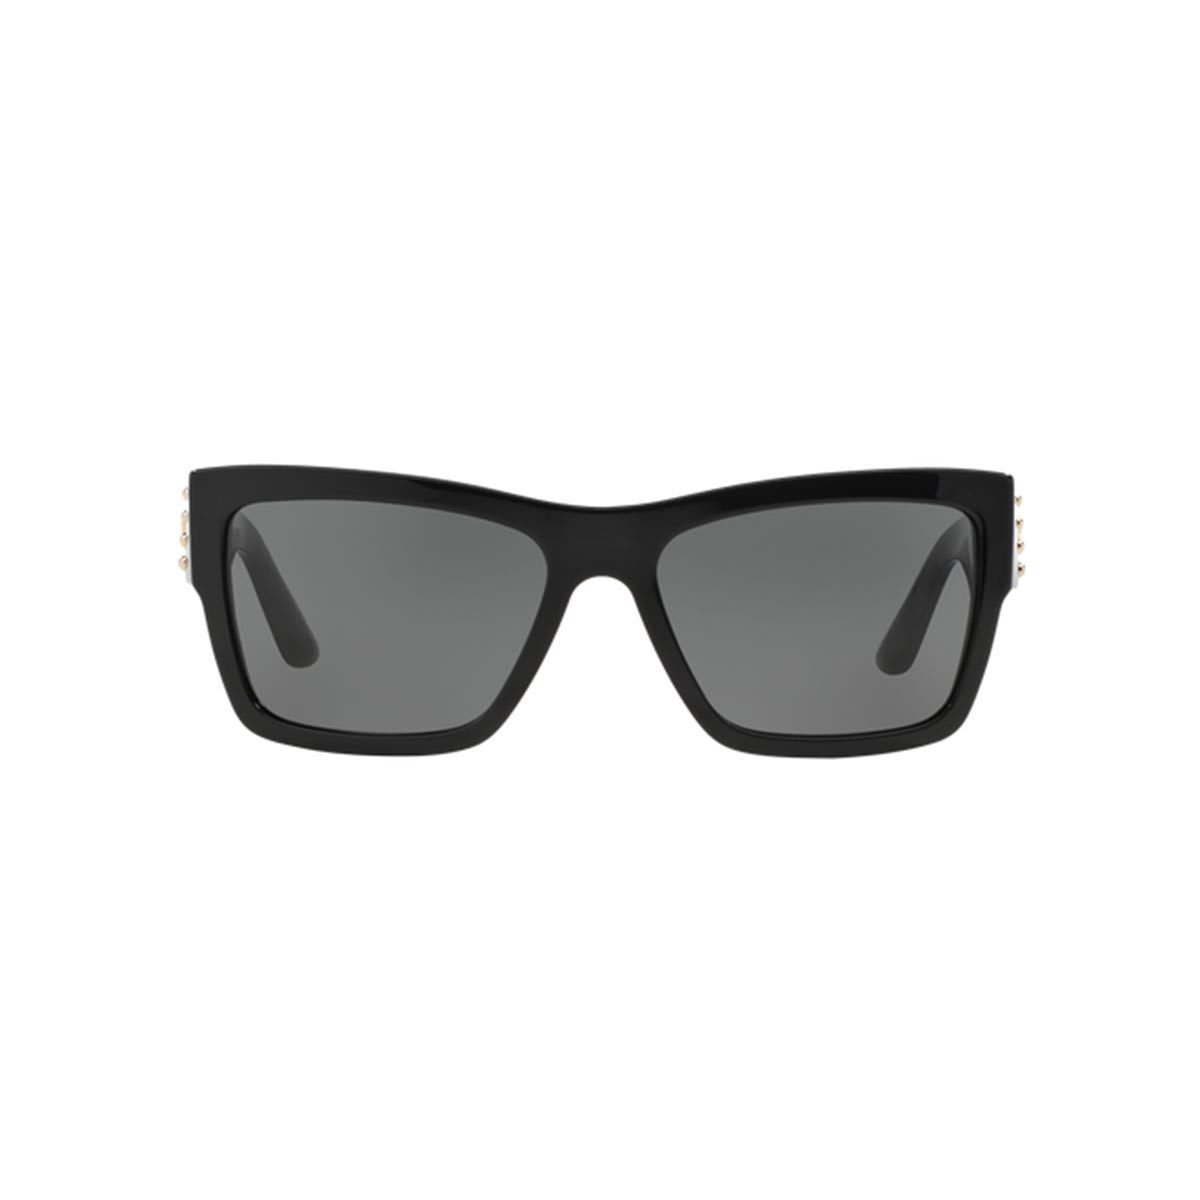 b3d8b6a31a14 Shop Versace Men s VE4289 Black Plastic Butterfly Sunglasses - Free  Shipping Today - Overstock.com - 10793476